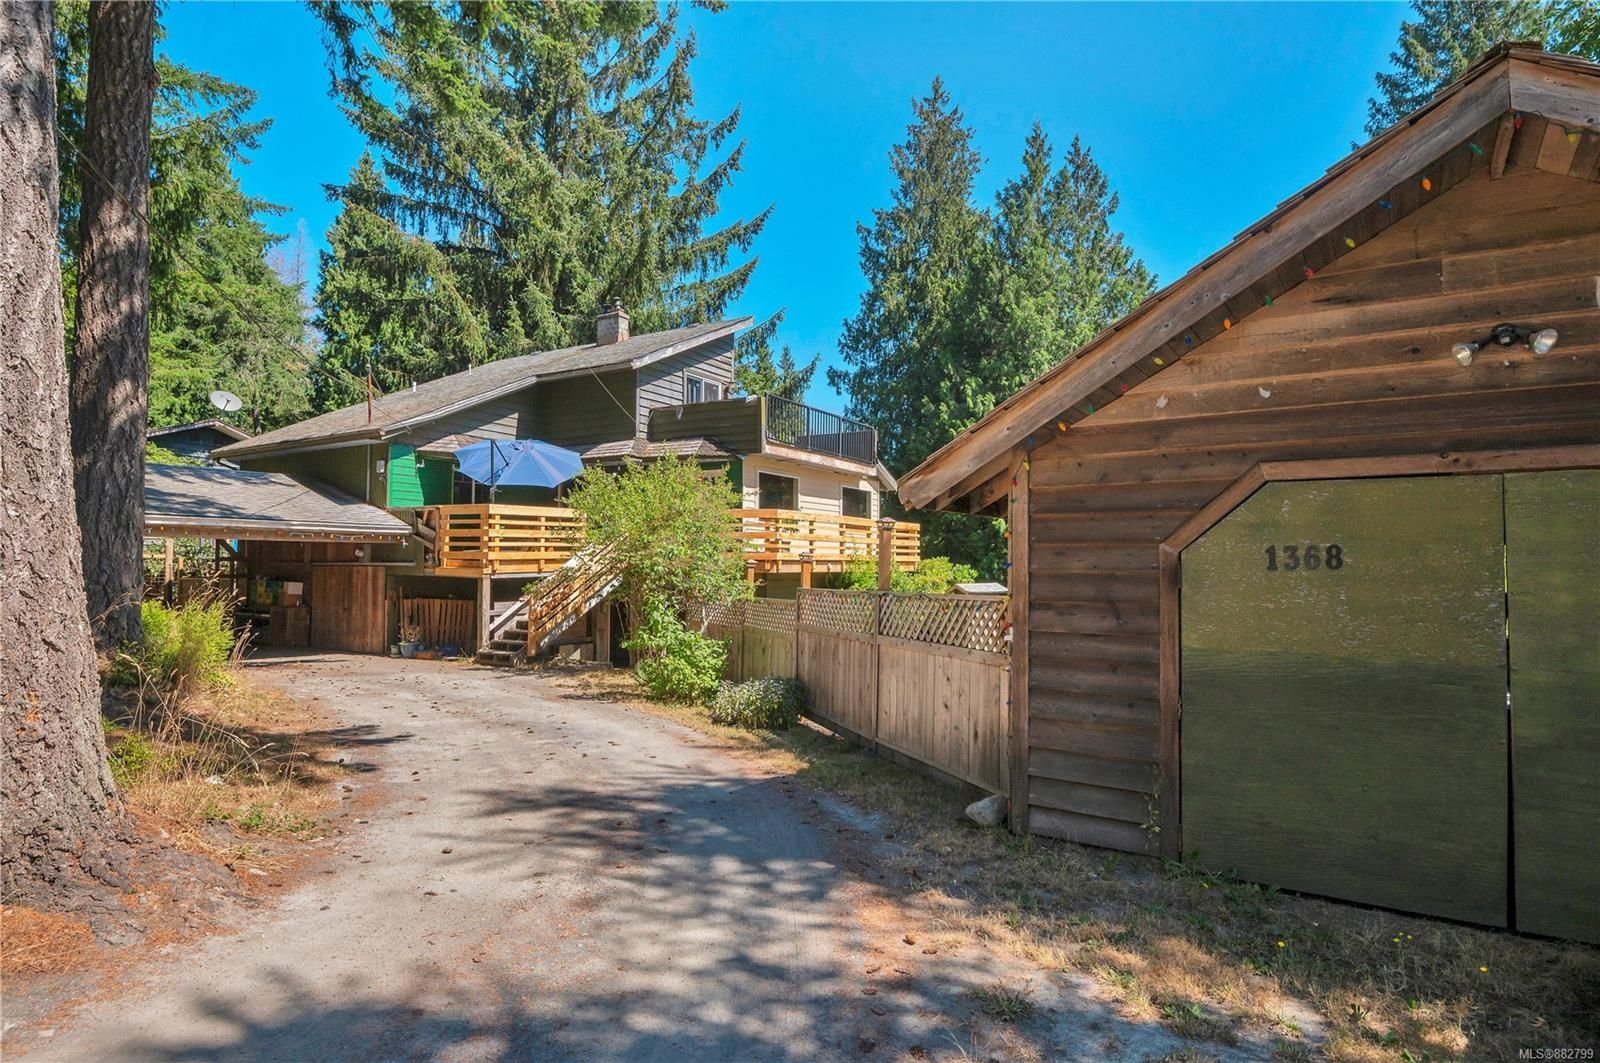 Quadra Island family home on 0.46 acres, located in a popular residential area on the Island!